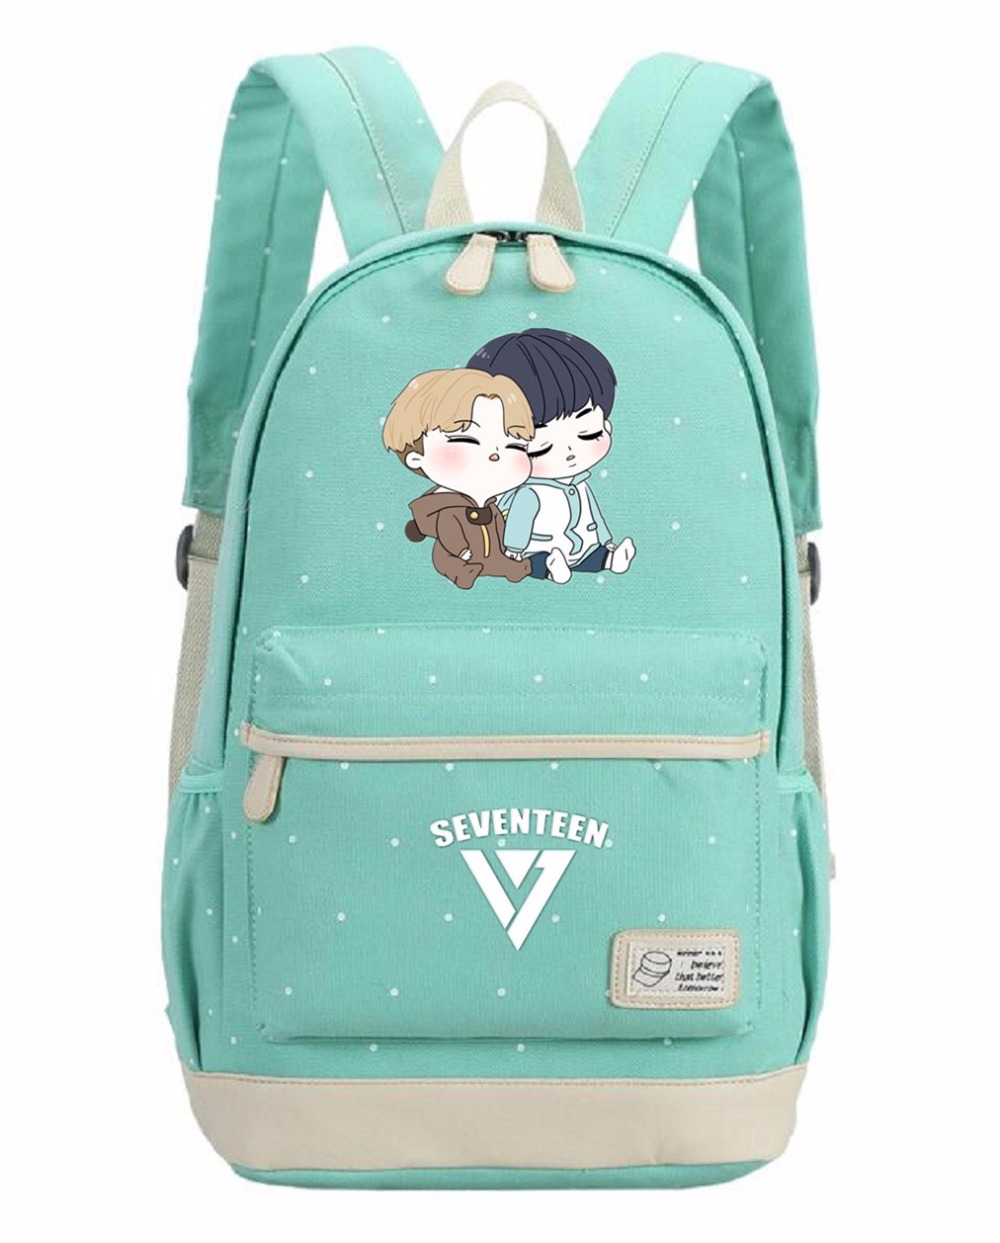 Komikoy Seventeen 17 Canvas Laptop Bag Flower Rucksacks Backpack Student School Travel Bags Daypack Removing Obstruction Men's Bags Backpacks